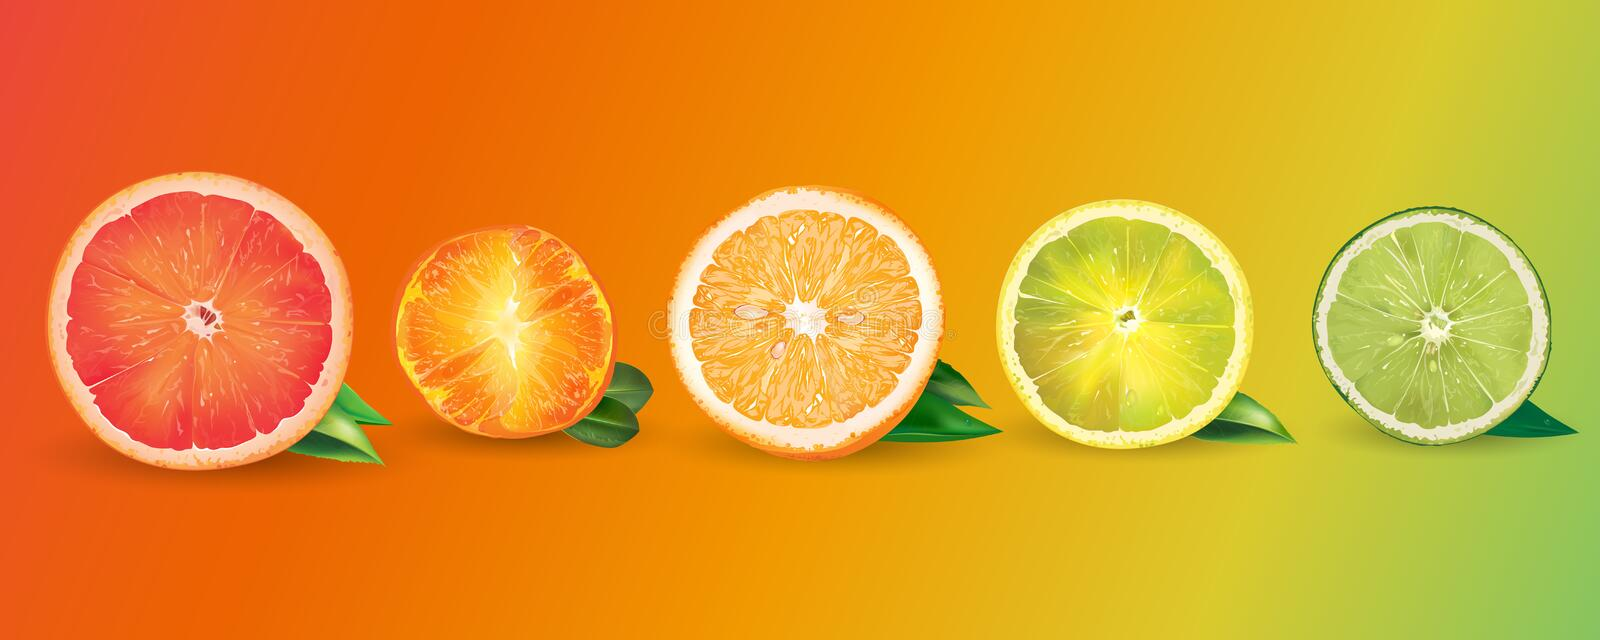 Orange, citron, agrume, mandarine, pamplemousse et chaux illustration libre de droits